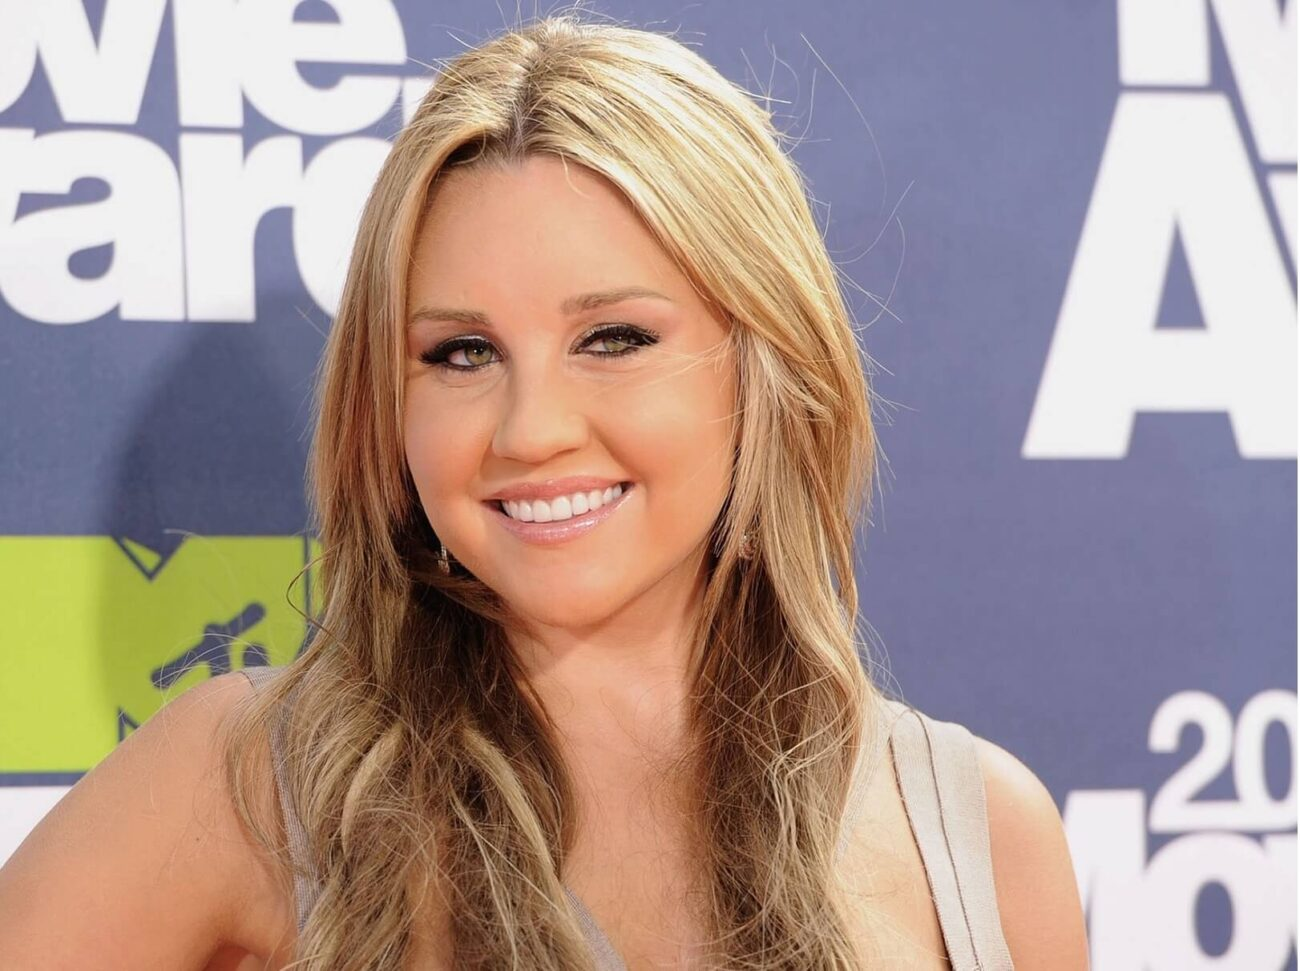 Amanda Bynes was one of Nickelodeon's defining stars of the 90s. Where is she now? Here are the allegations against Dan Schneider.